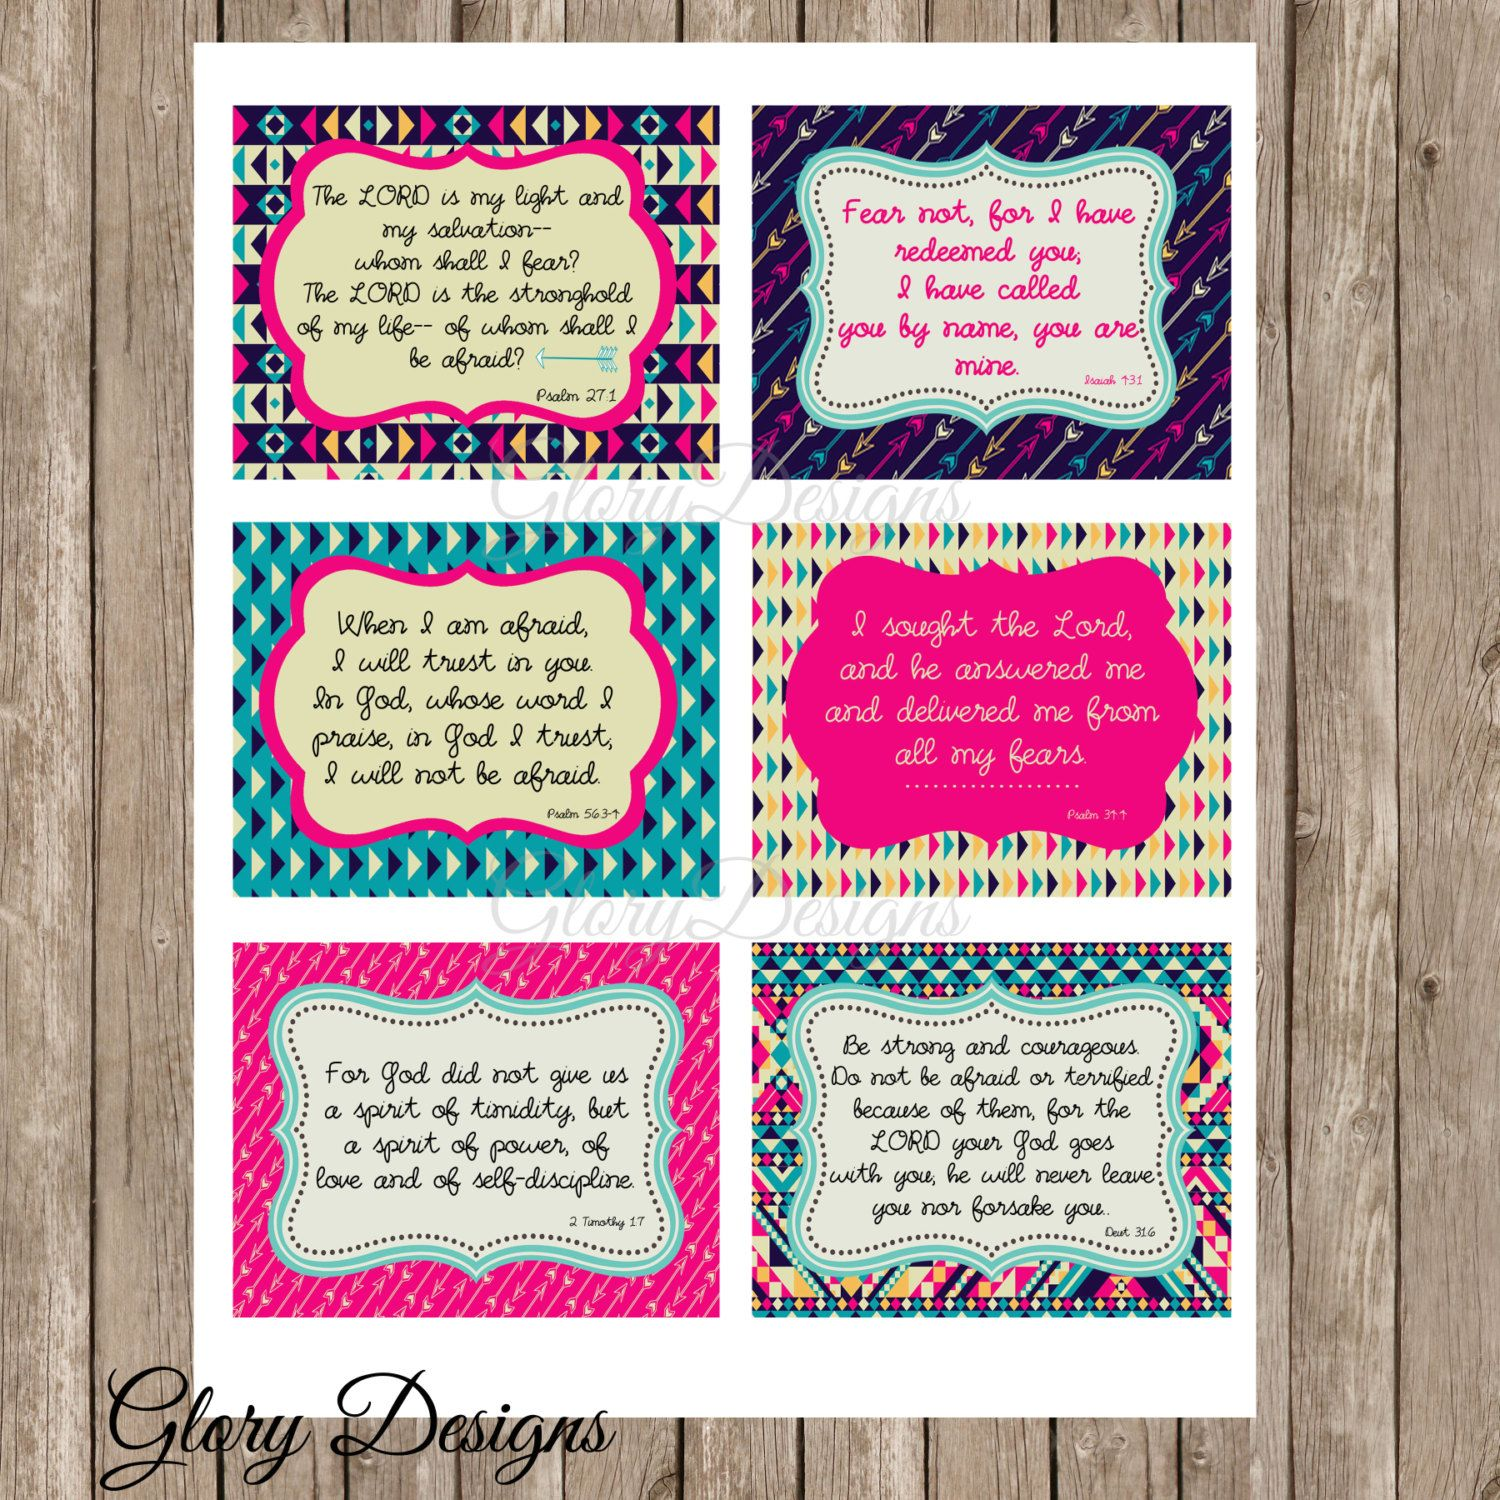 Printable Prayer Cards Fearless Printable Bible Verse